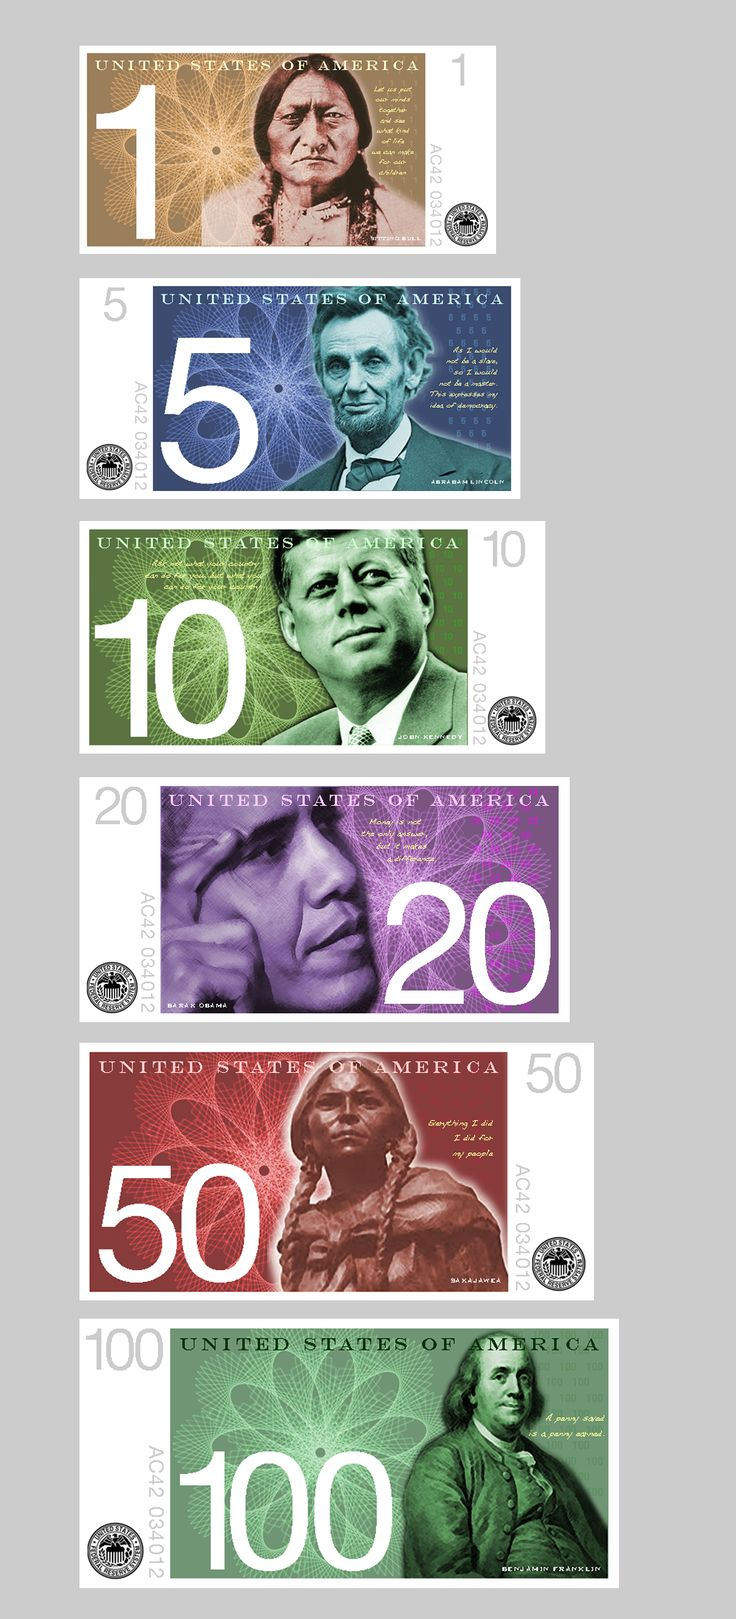 I Think The New Dollar Designs Look Fascinating : I Am 'drawn' To The New Dollar Designs Story & Experience